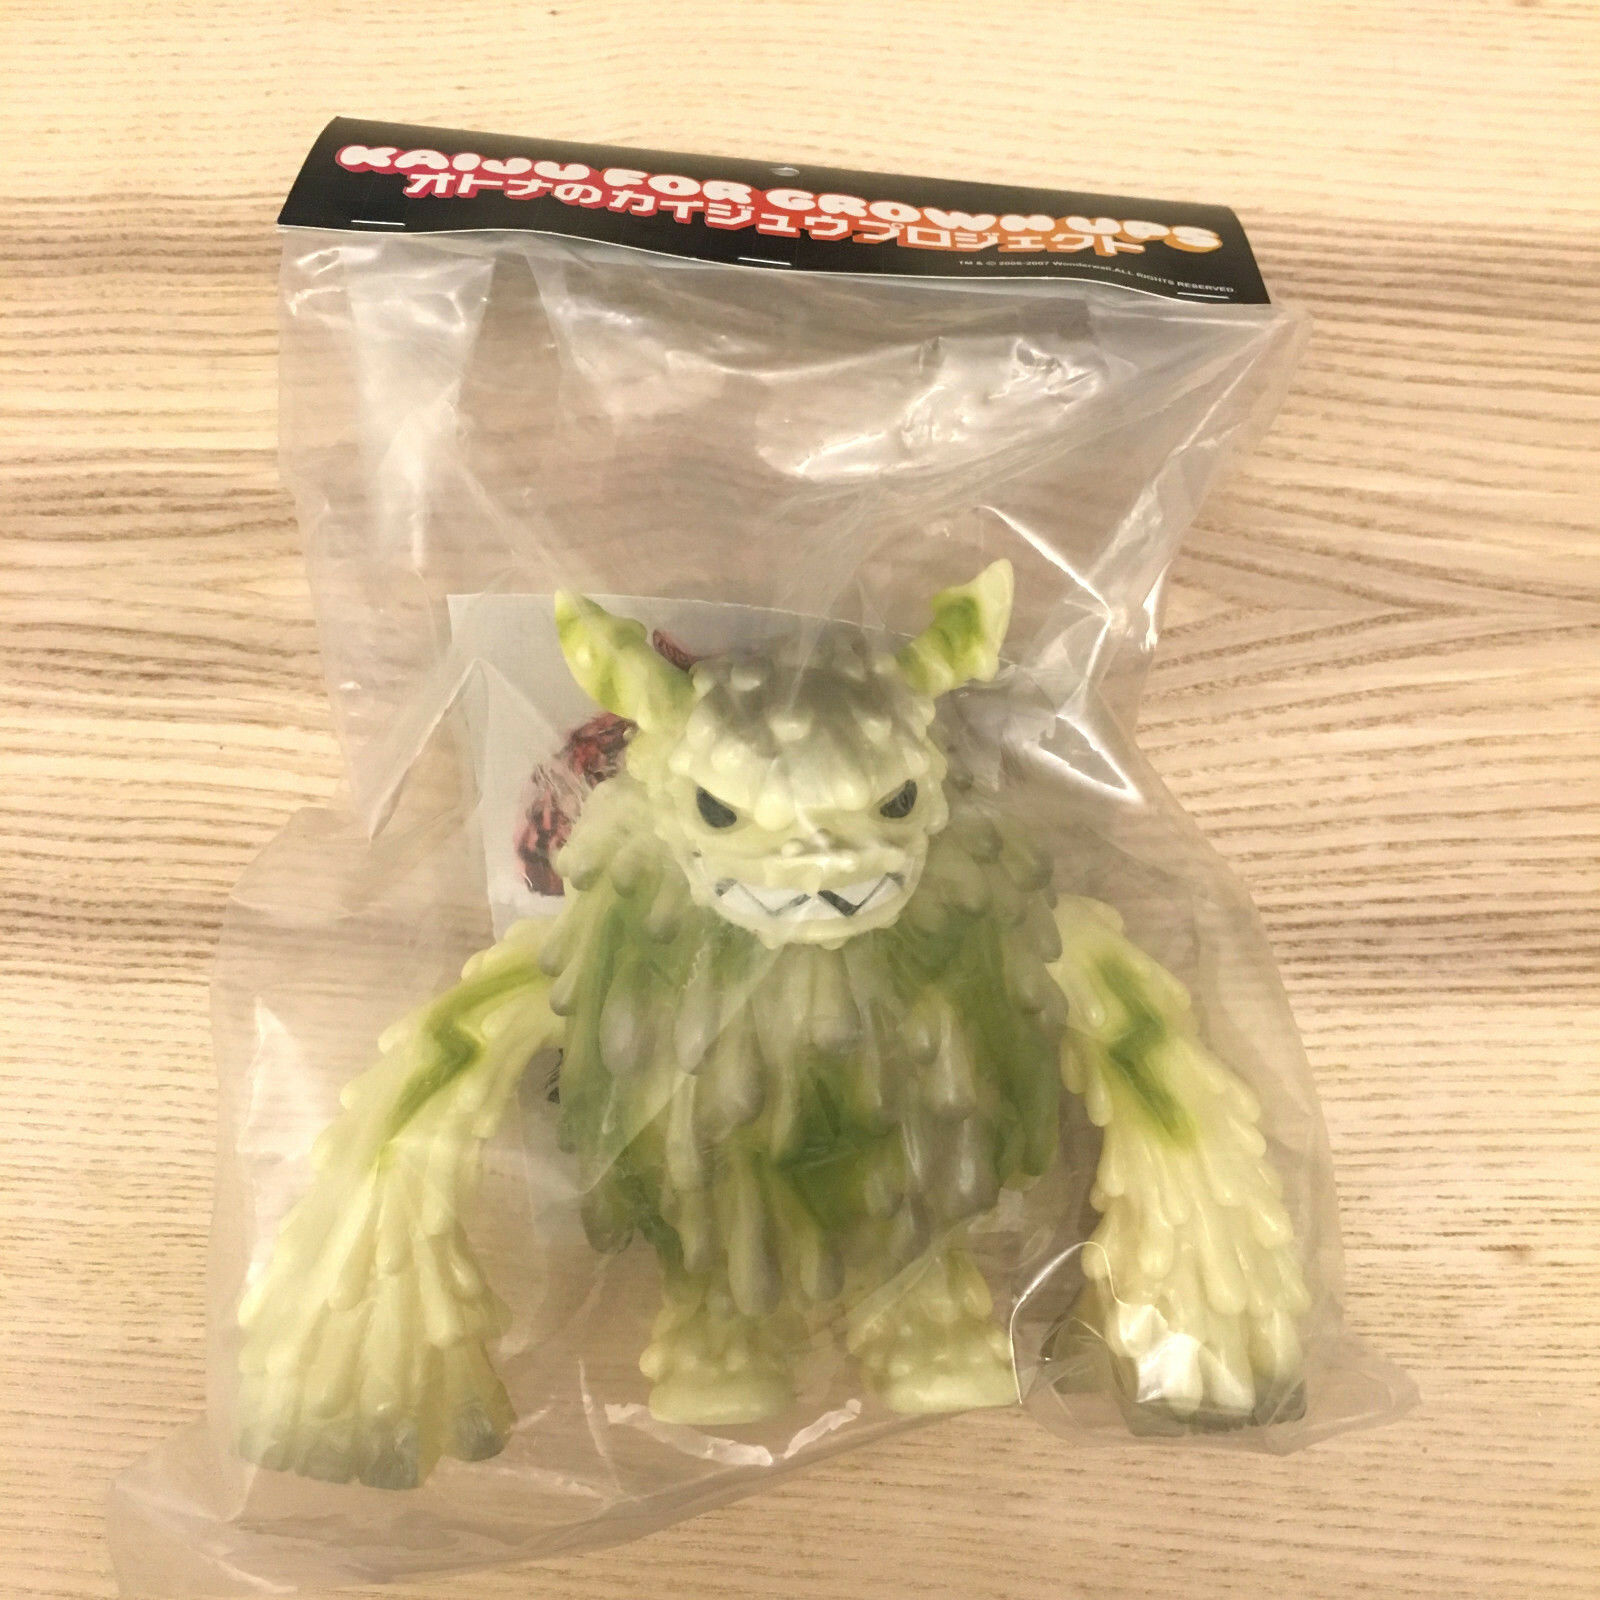 KFGU Kaiju for Grown Ups Magman GID par Touma Vinyl Toy Figure Ed 100